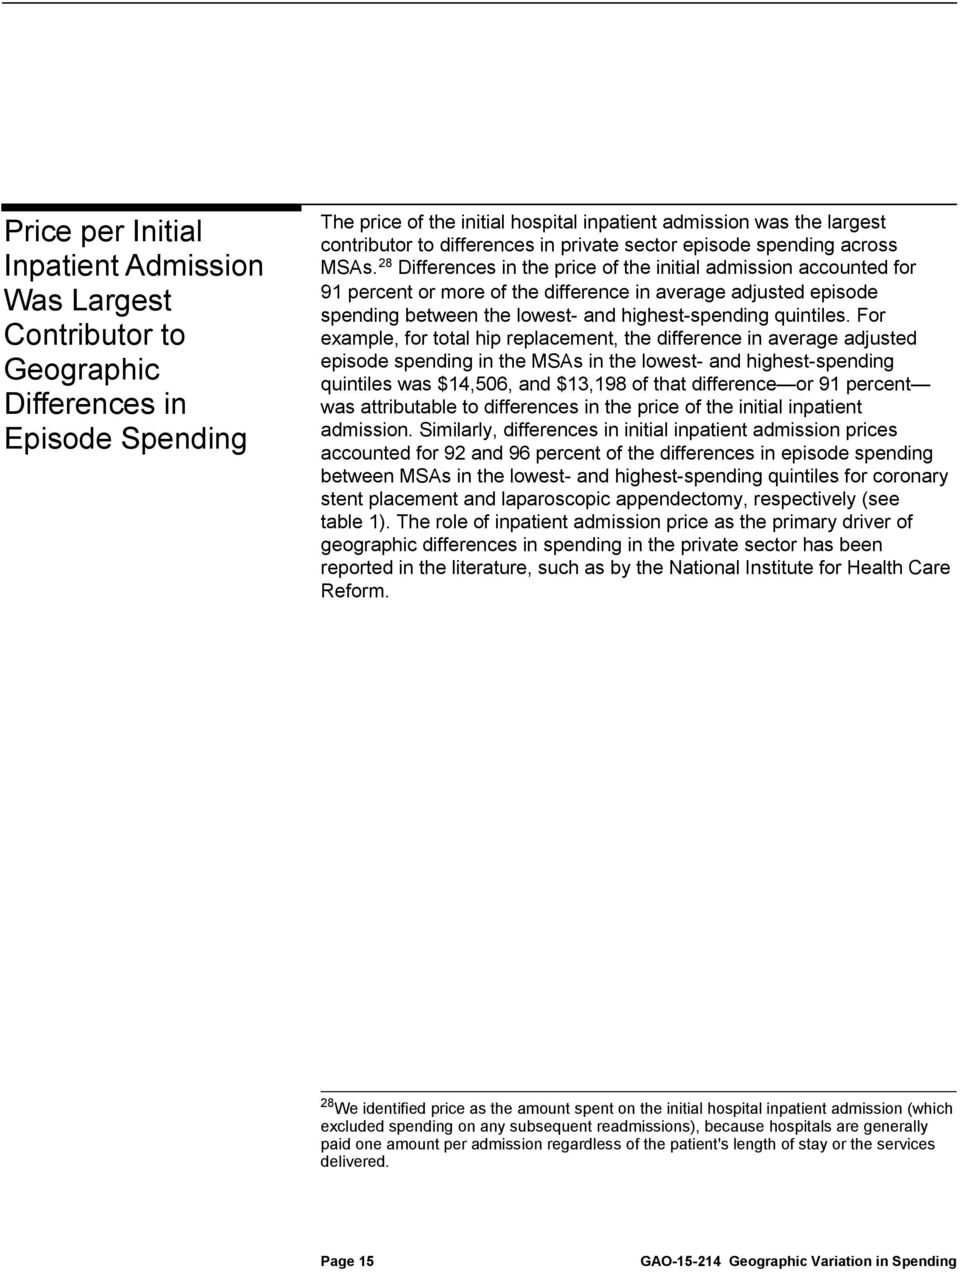 28 Differenes in the prie of the initil dmission ounted for 91 perent or more of the differene in verge djusted episode spending etween the lowest- nd highest-spending quintiles.